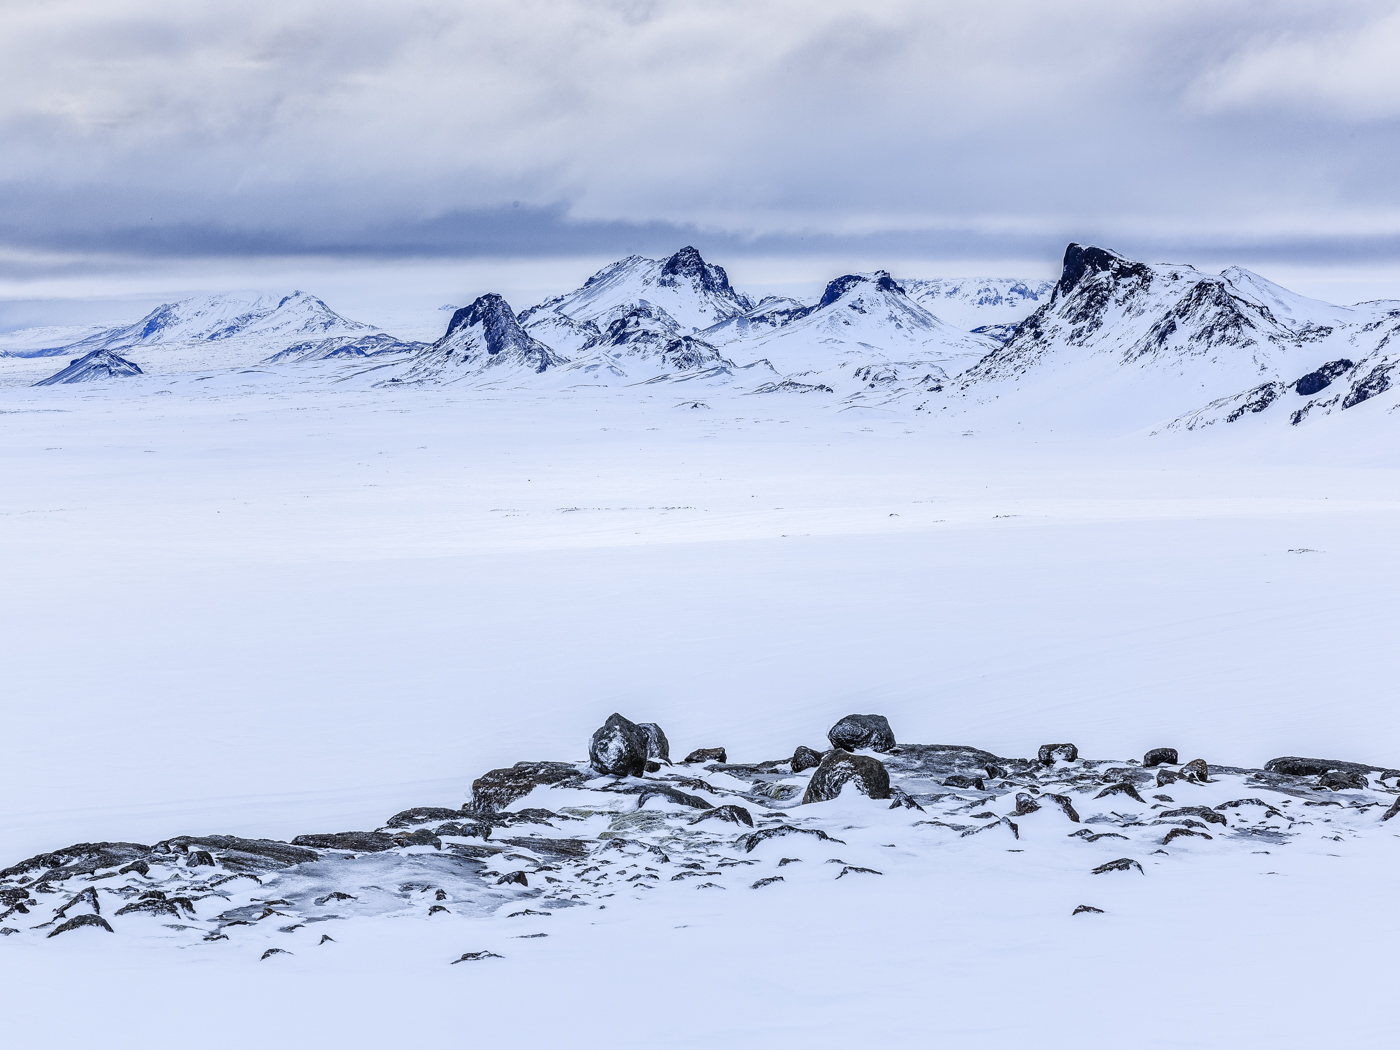 Langjoukull, Iceland. Canon 5DII, 24-105mm f/4L at 80mm, ISO 100, 1/5 sec at f/16, © Mark Bauer